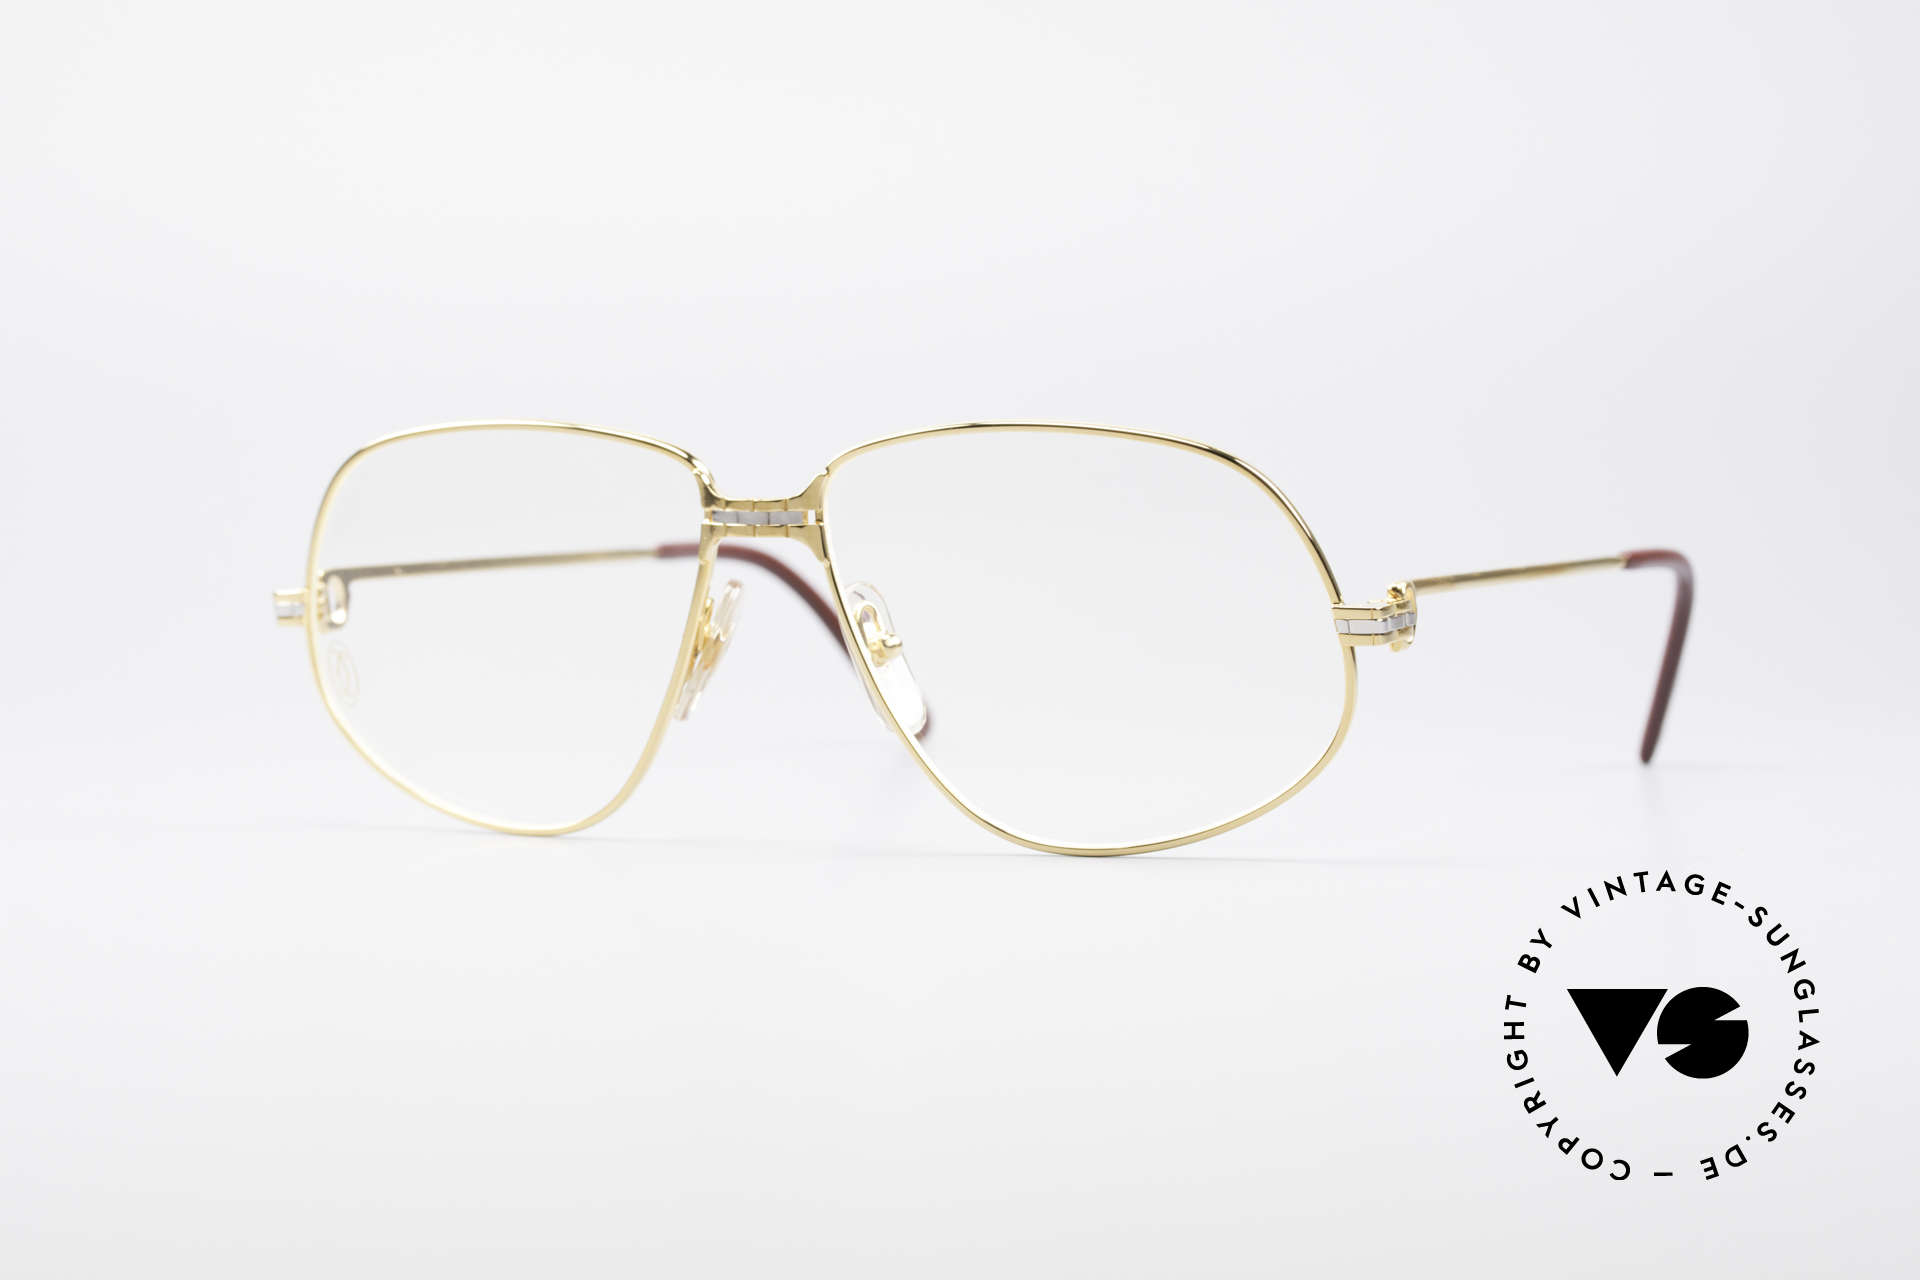 Cartier Panthere G.M. - L 1980's Luxury Eyeglass-Frame, Cartier Panthère = the world famous panther by CARTIER, Made for Men